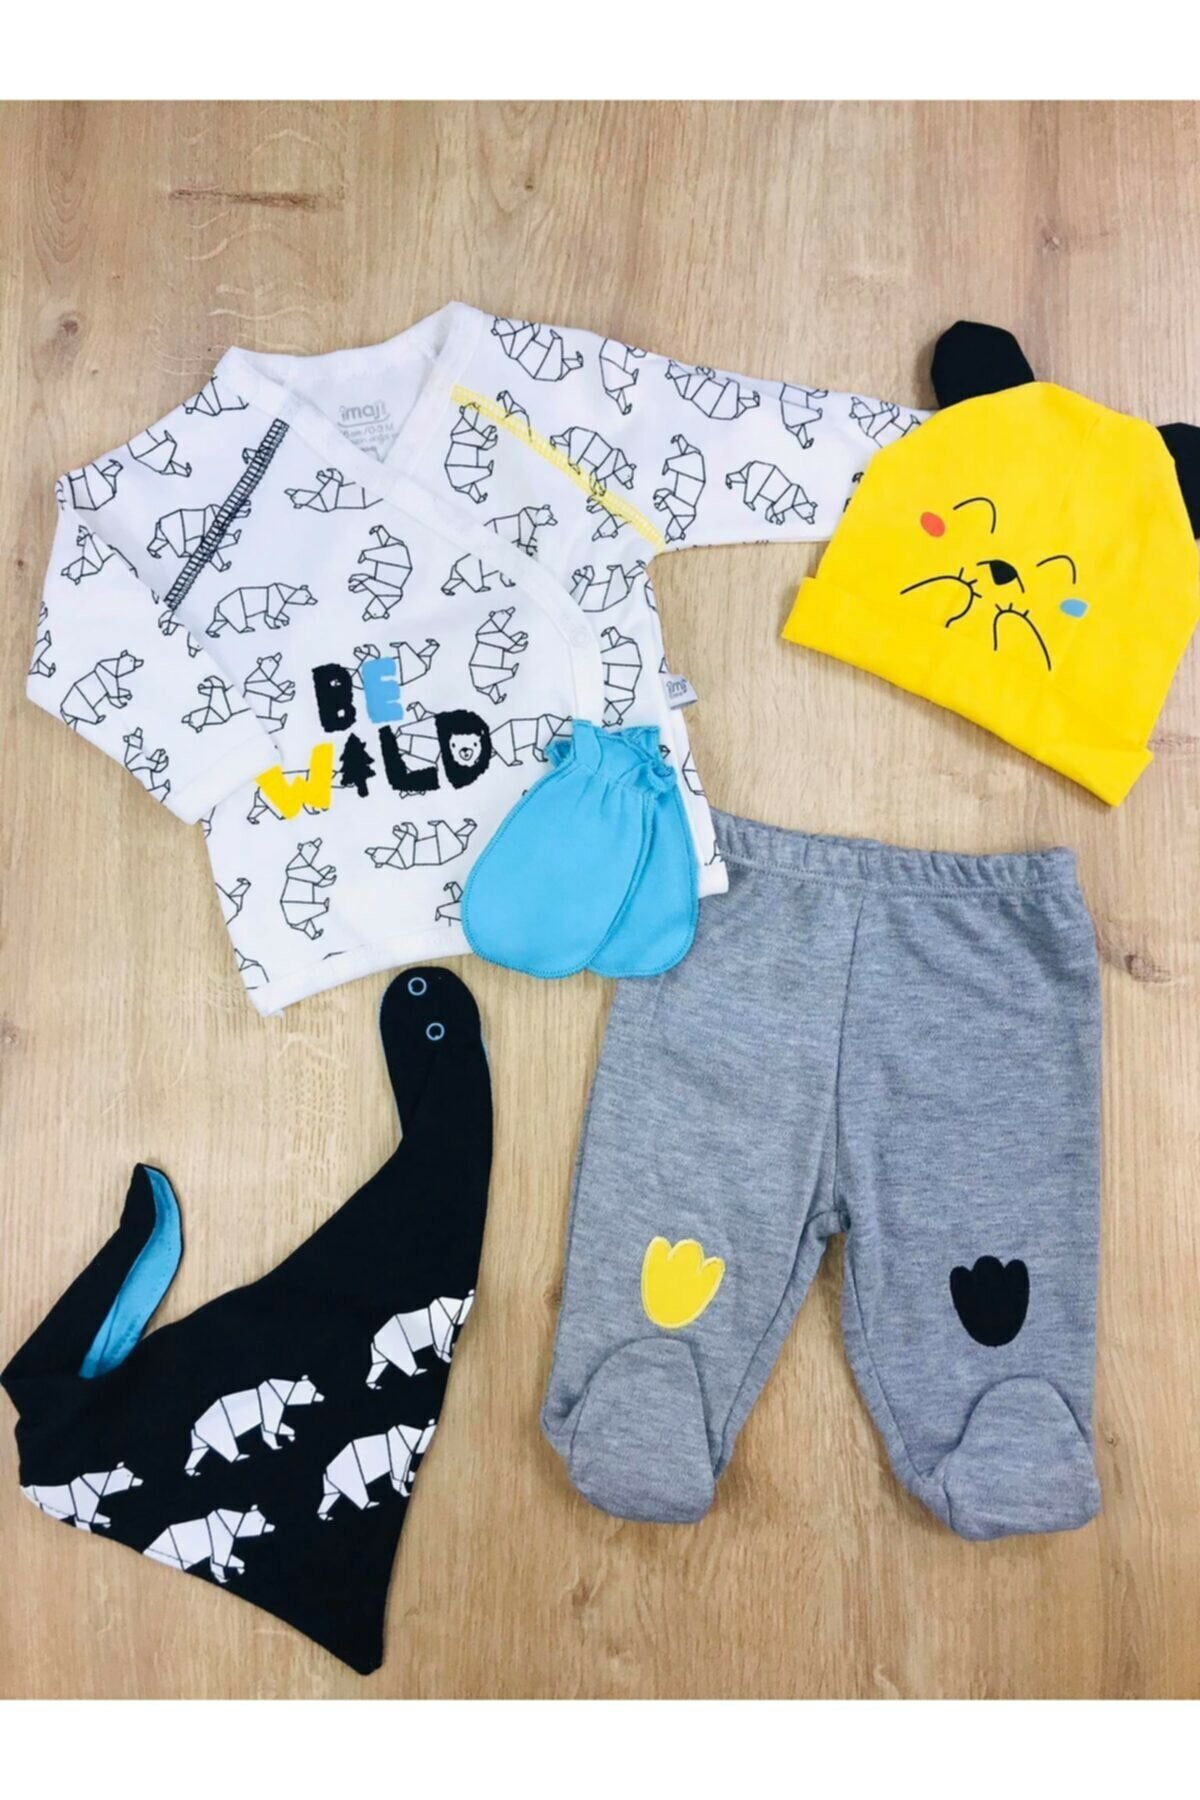 2017 new summer baby clothing set cotton cute pattern vest Teddy bear Pattern Infant New Born Baby Boy Girl Set of 5 Outfit 100% Natural Cotton 4 Seasons Cute Confortable Soft clothing